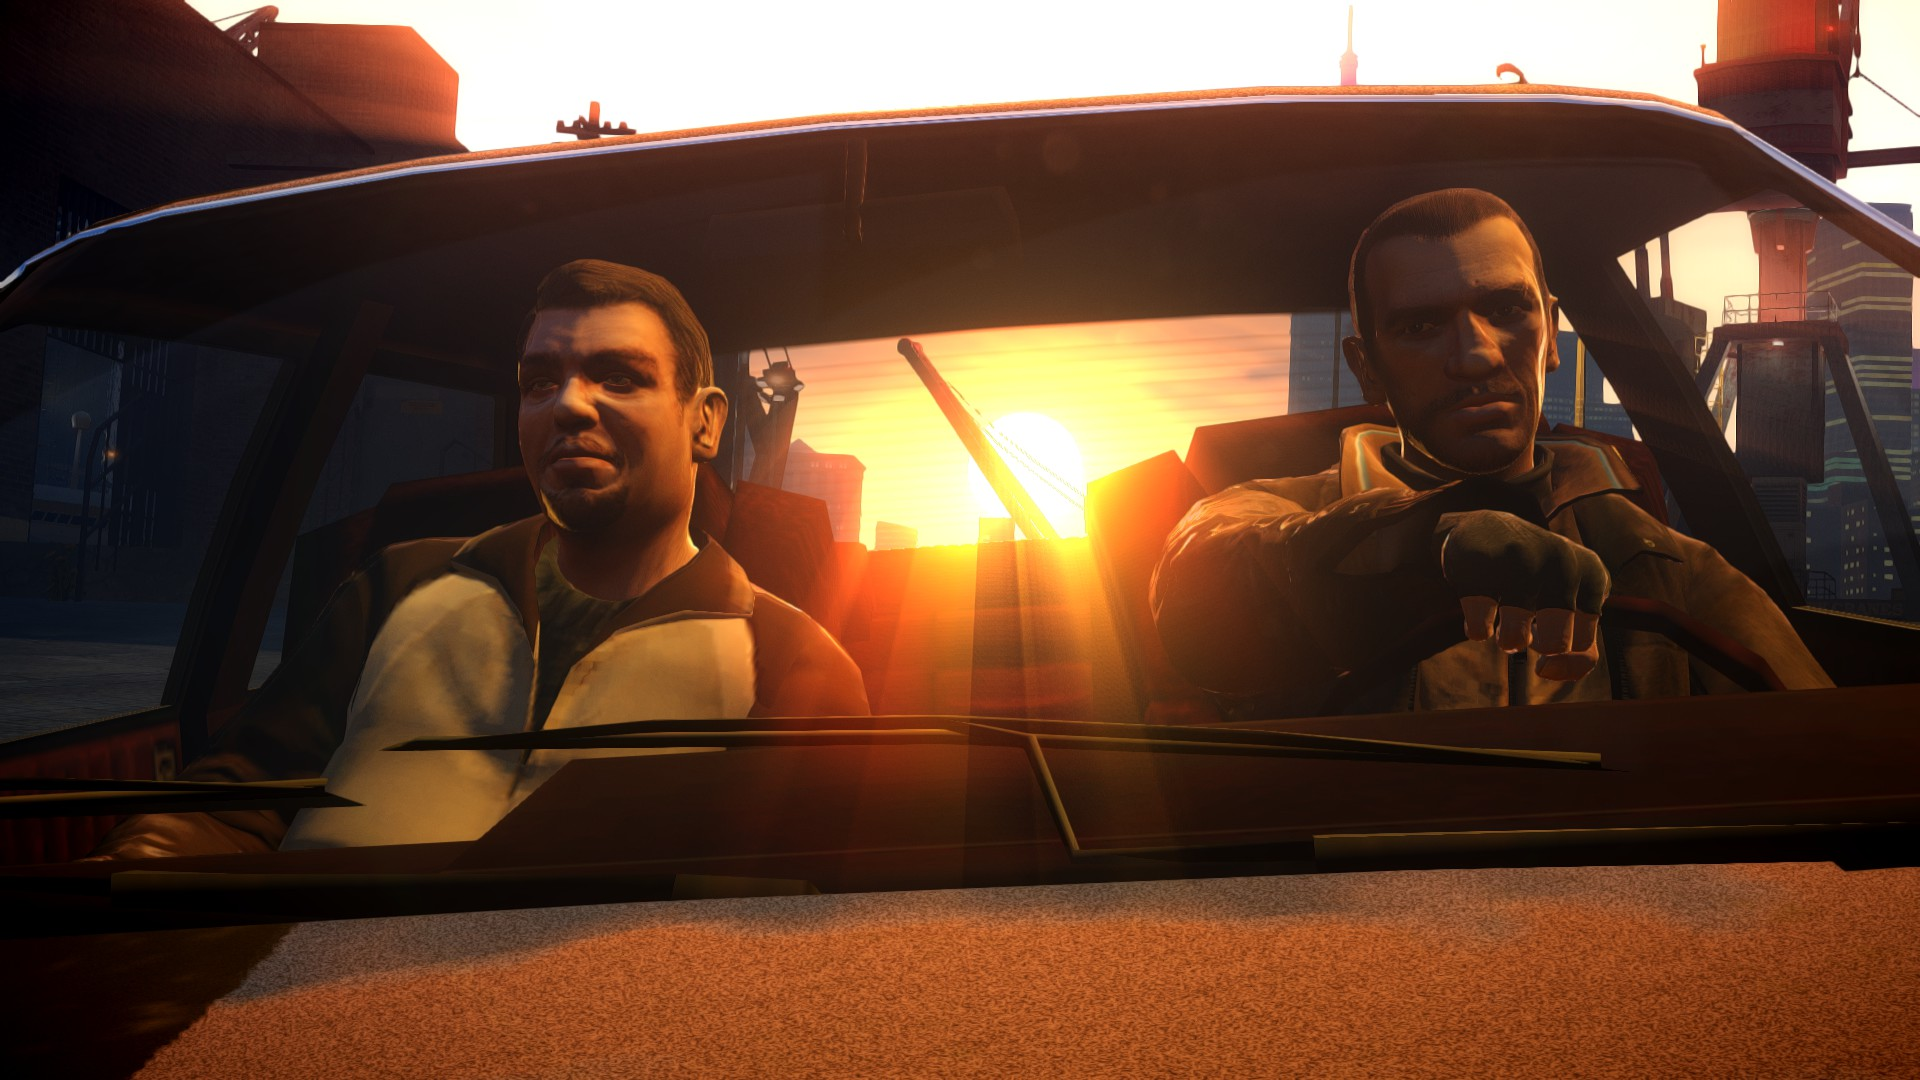 It was GTA 4's world, not its story, that made a lasting impression